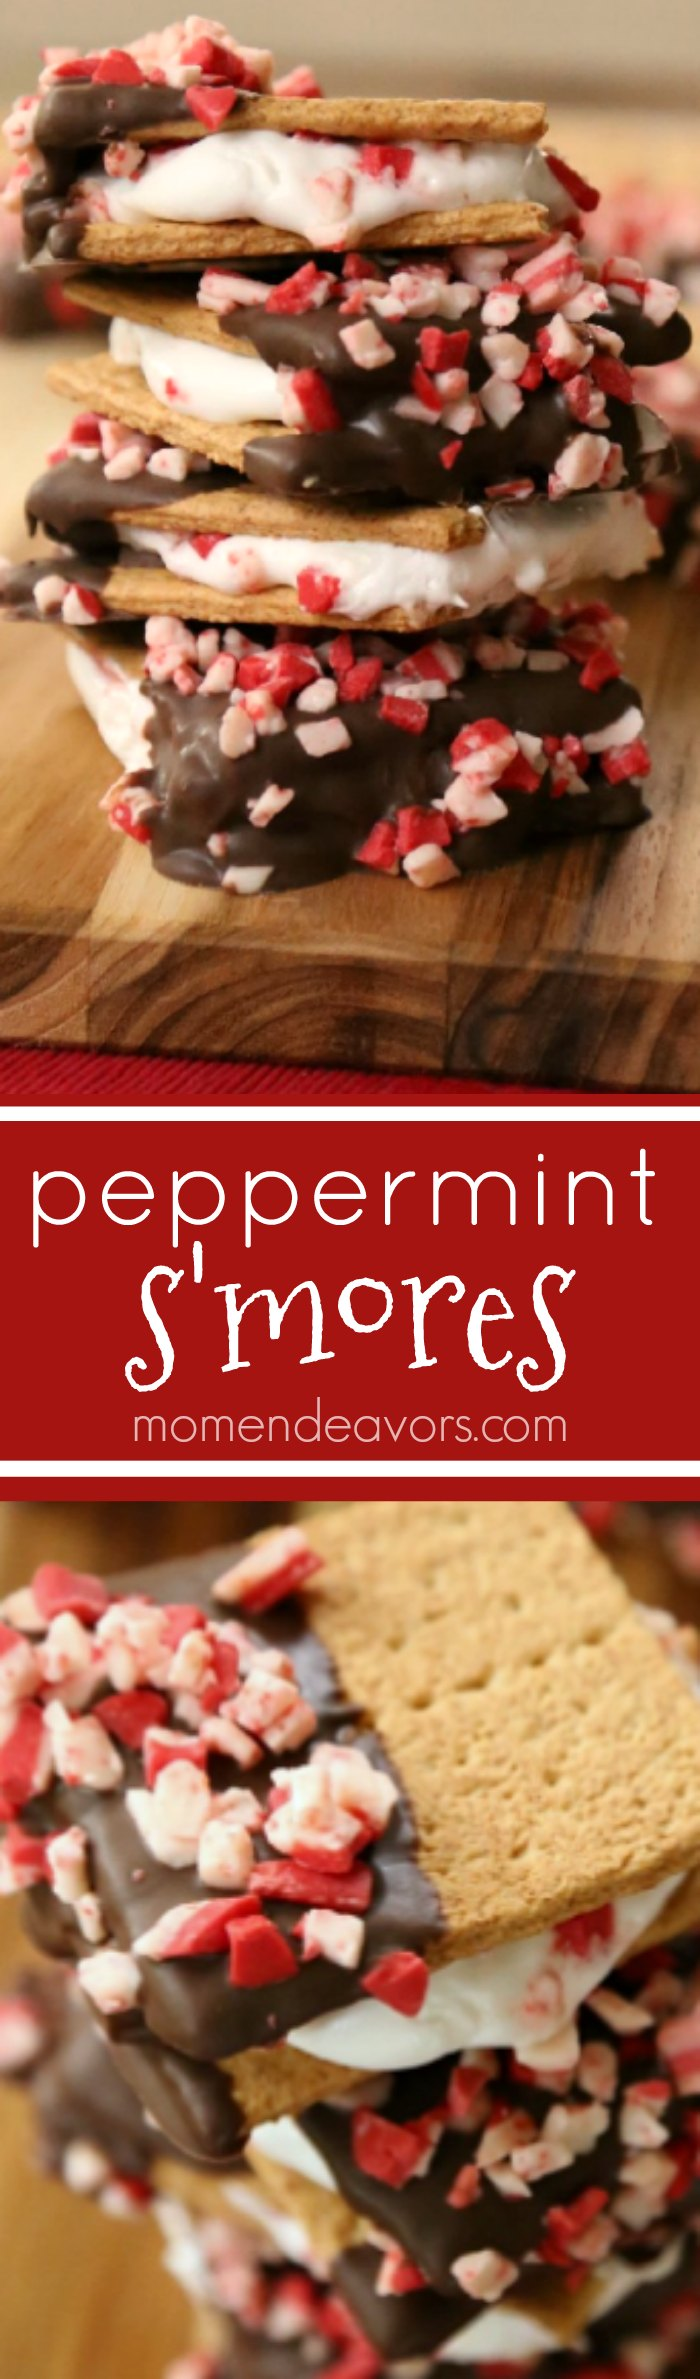 Peppermint S'mores Recipe